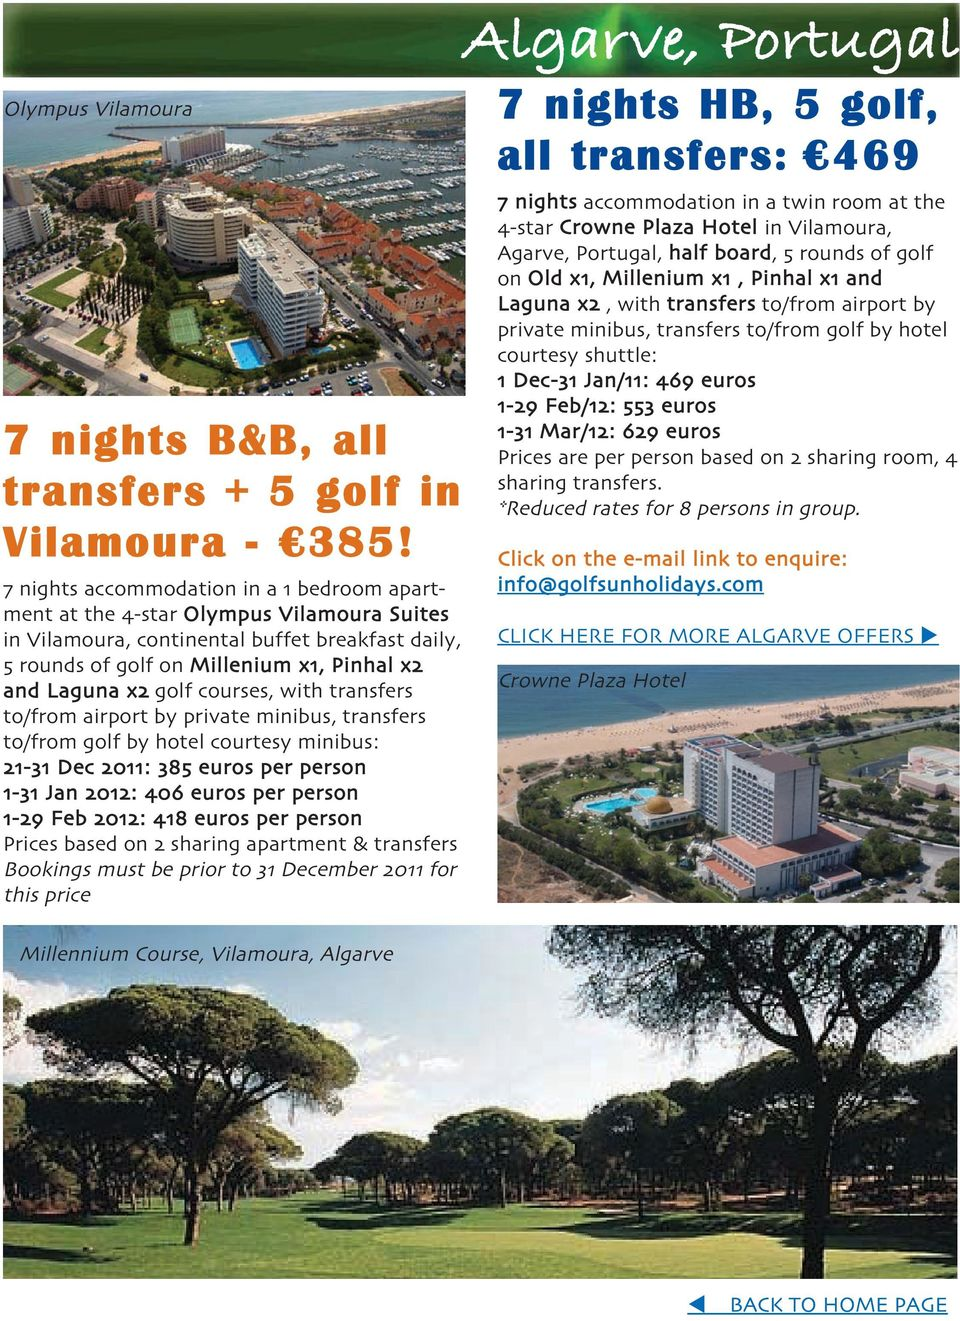 courses, with transfers to/from airport by private minibus, transfers to/from golf by hotel courtesy minibus: 21-31 Dec 2011: 385 euros per person 1-31 Jan 2012: 406 euros per person 1-29 Feb 2012: